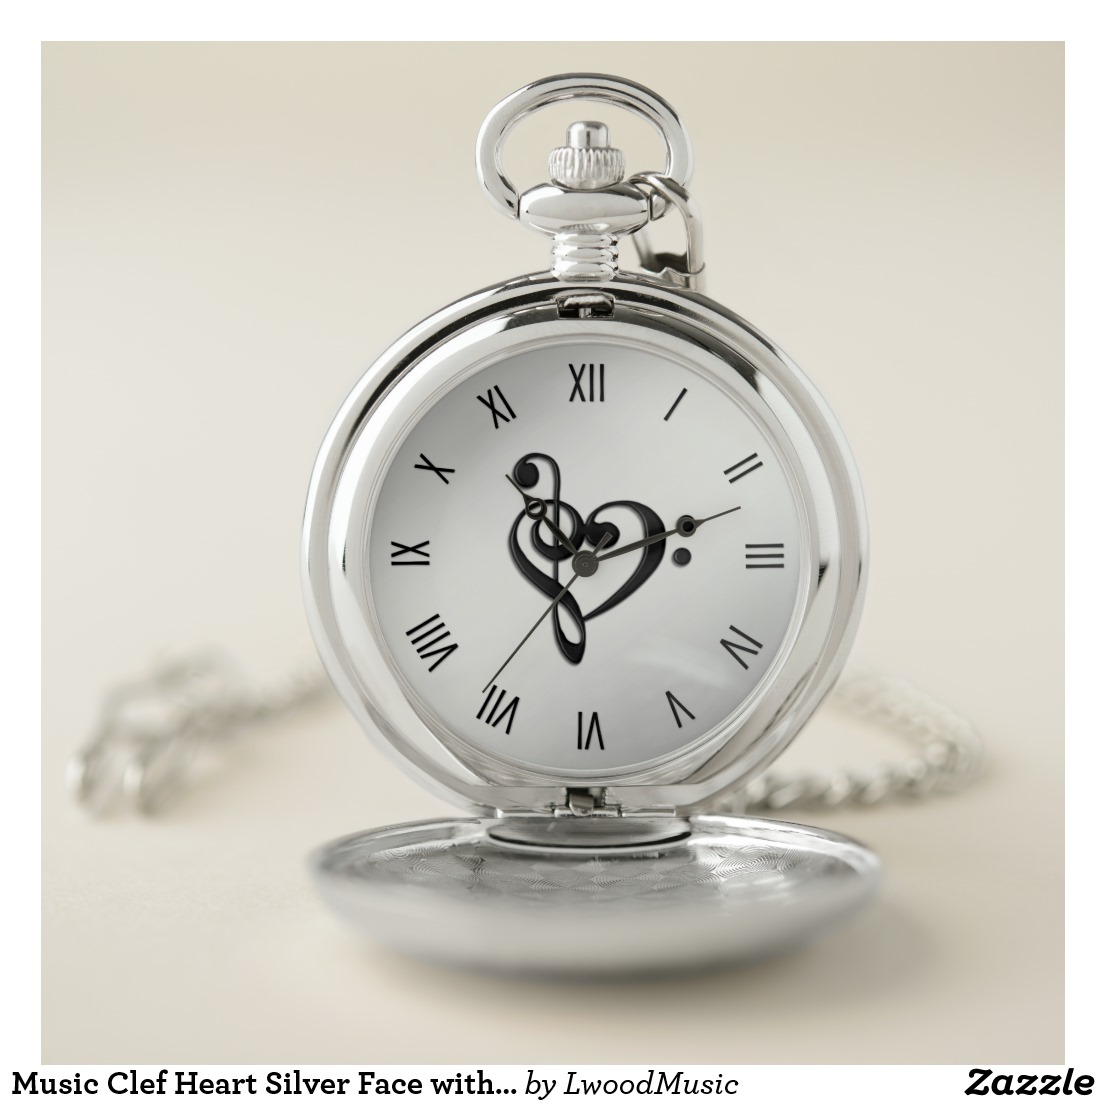 Music Clef Heart Silver Face with Roman Numerals Pocket Watch